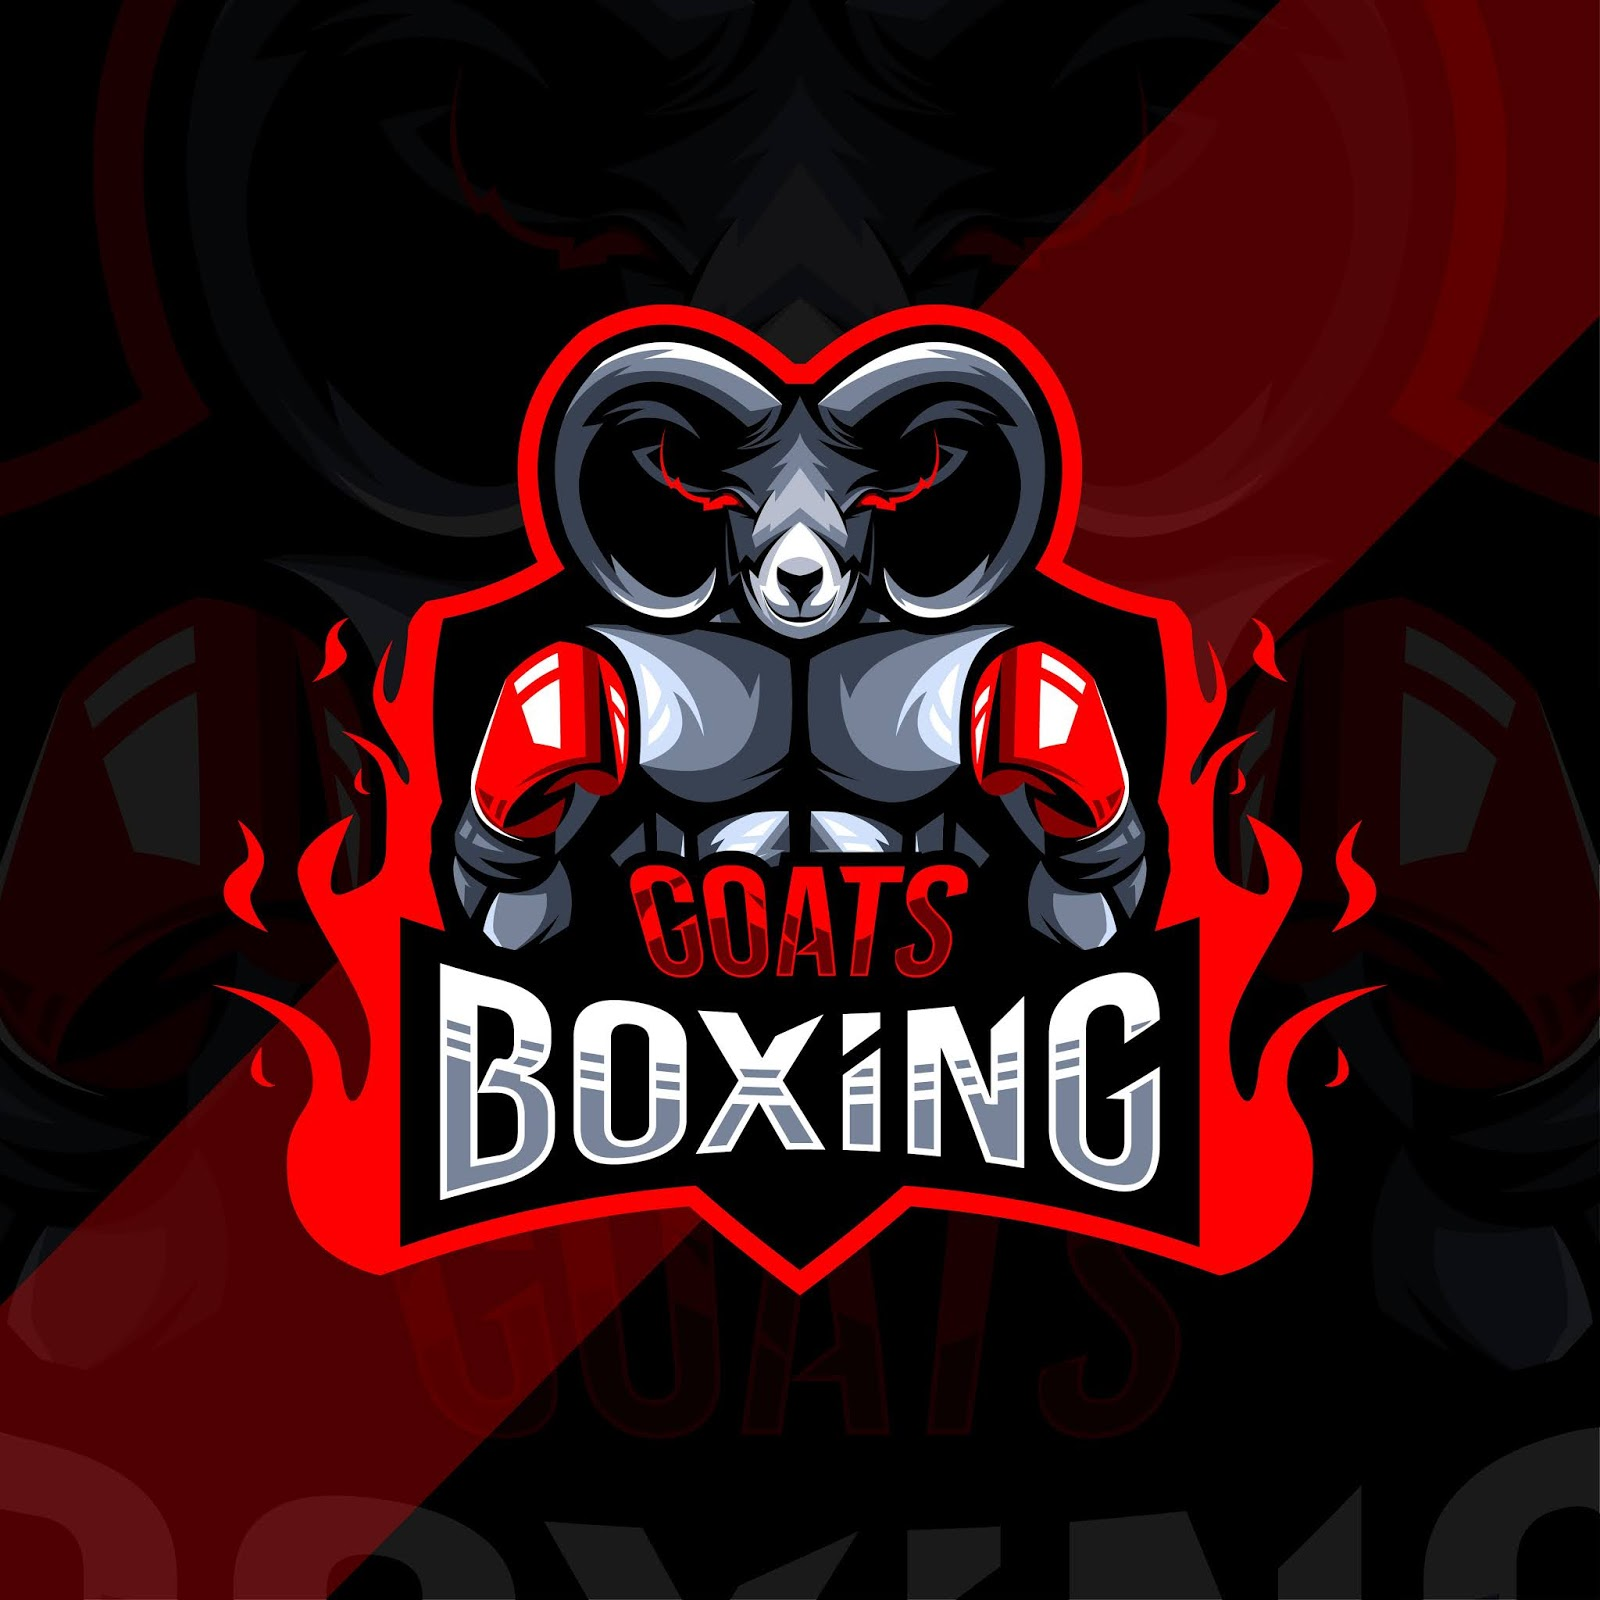 Goat Boxing Mascot Logo Esport Design Free Download Vector CDR, AI, EPS and PNG Formats